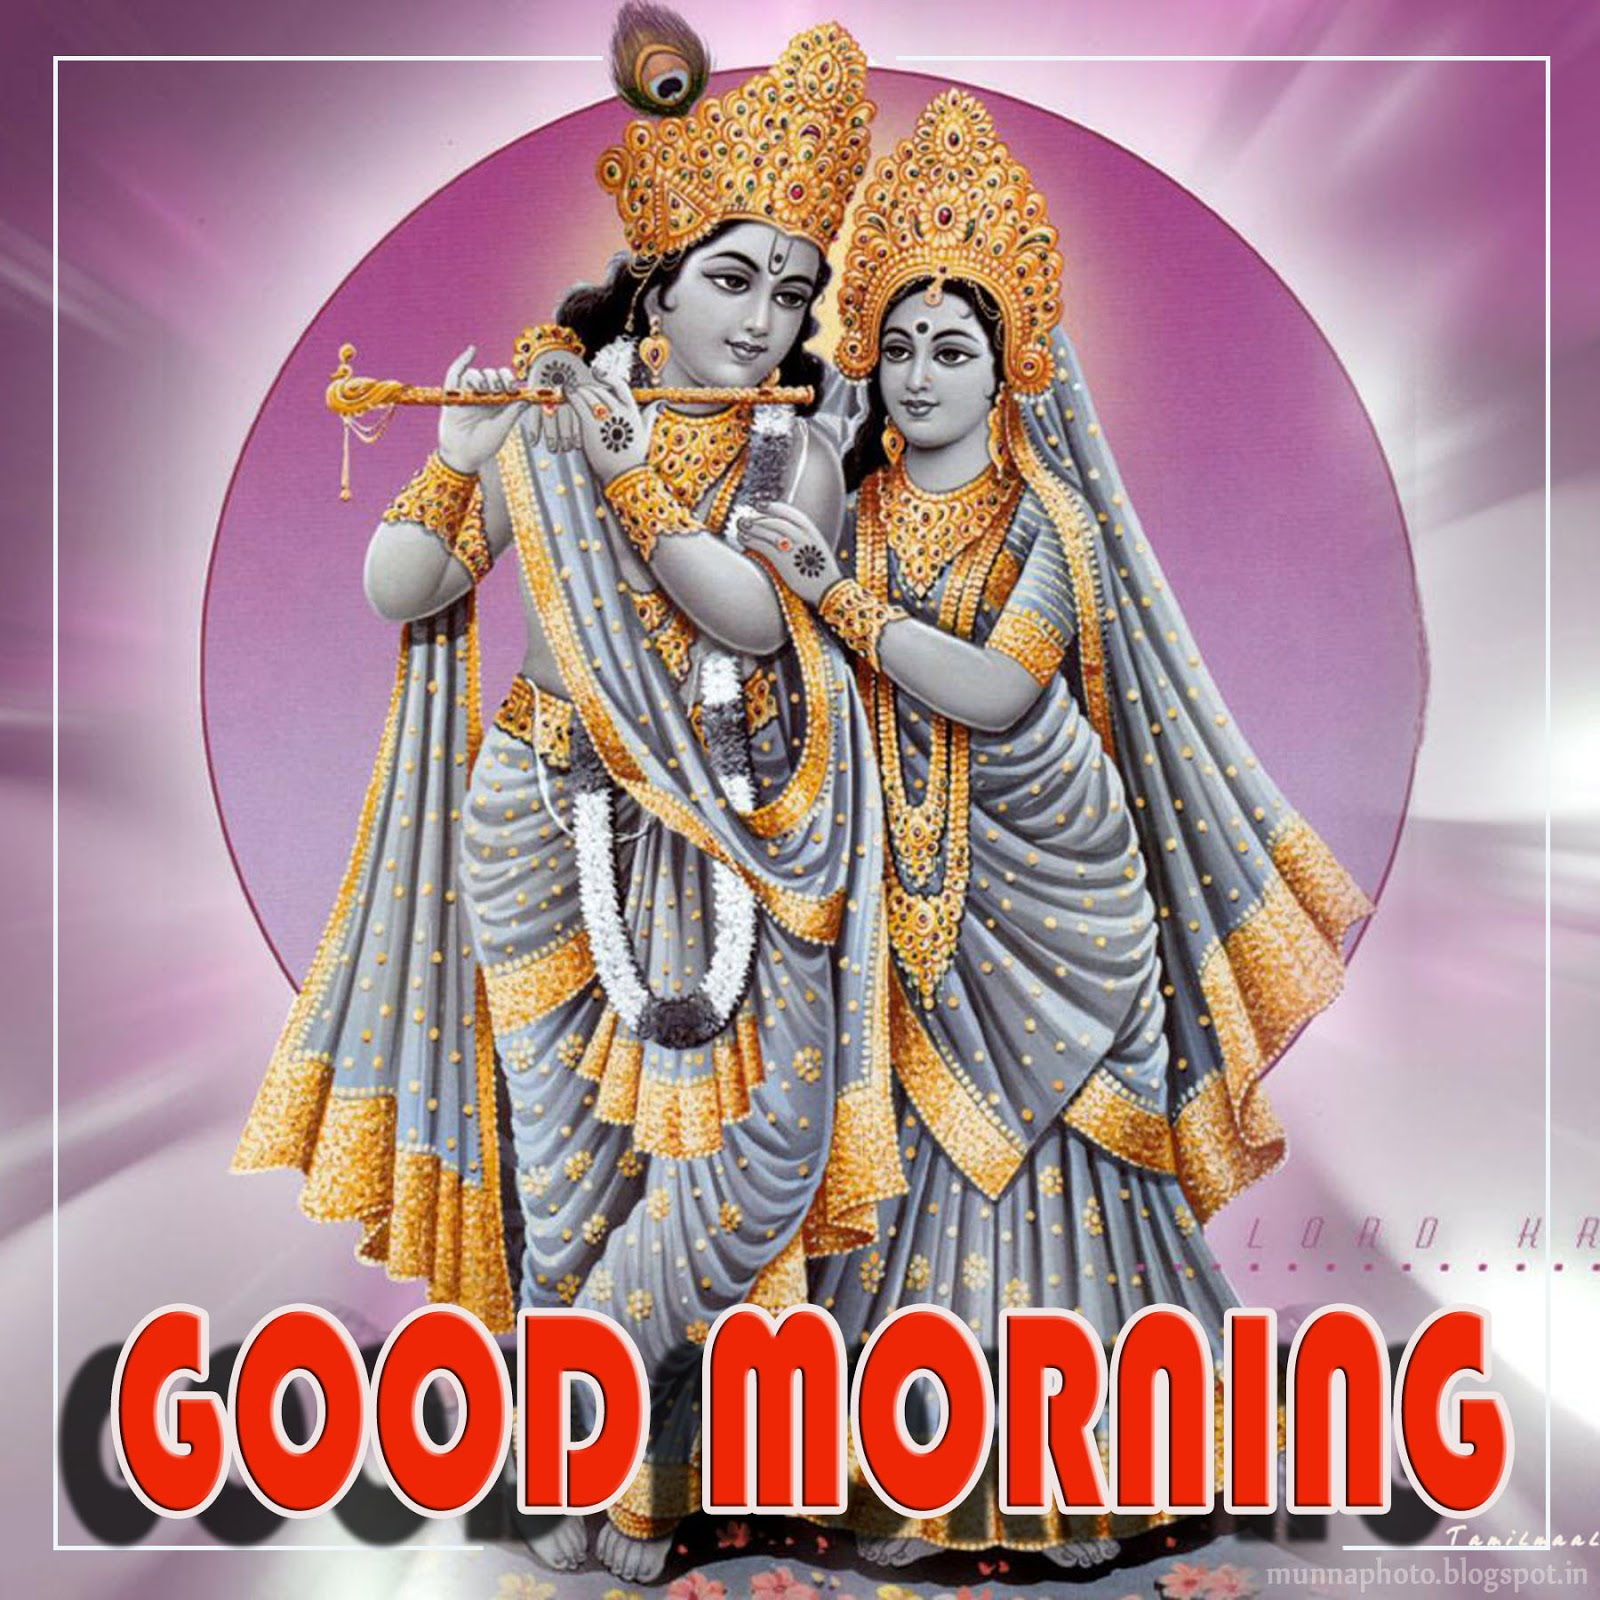 God Hindhu Good Morning Good Night Munna Photo